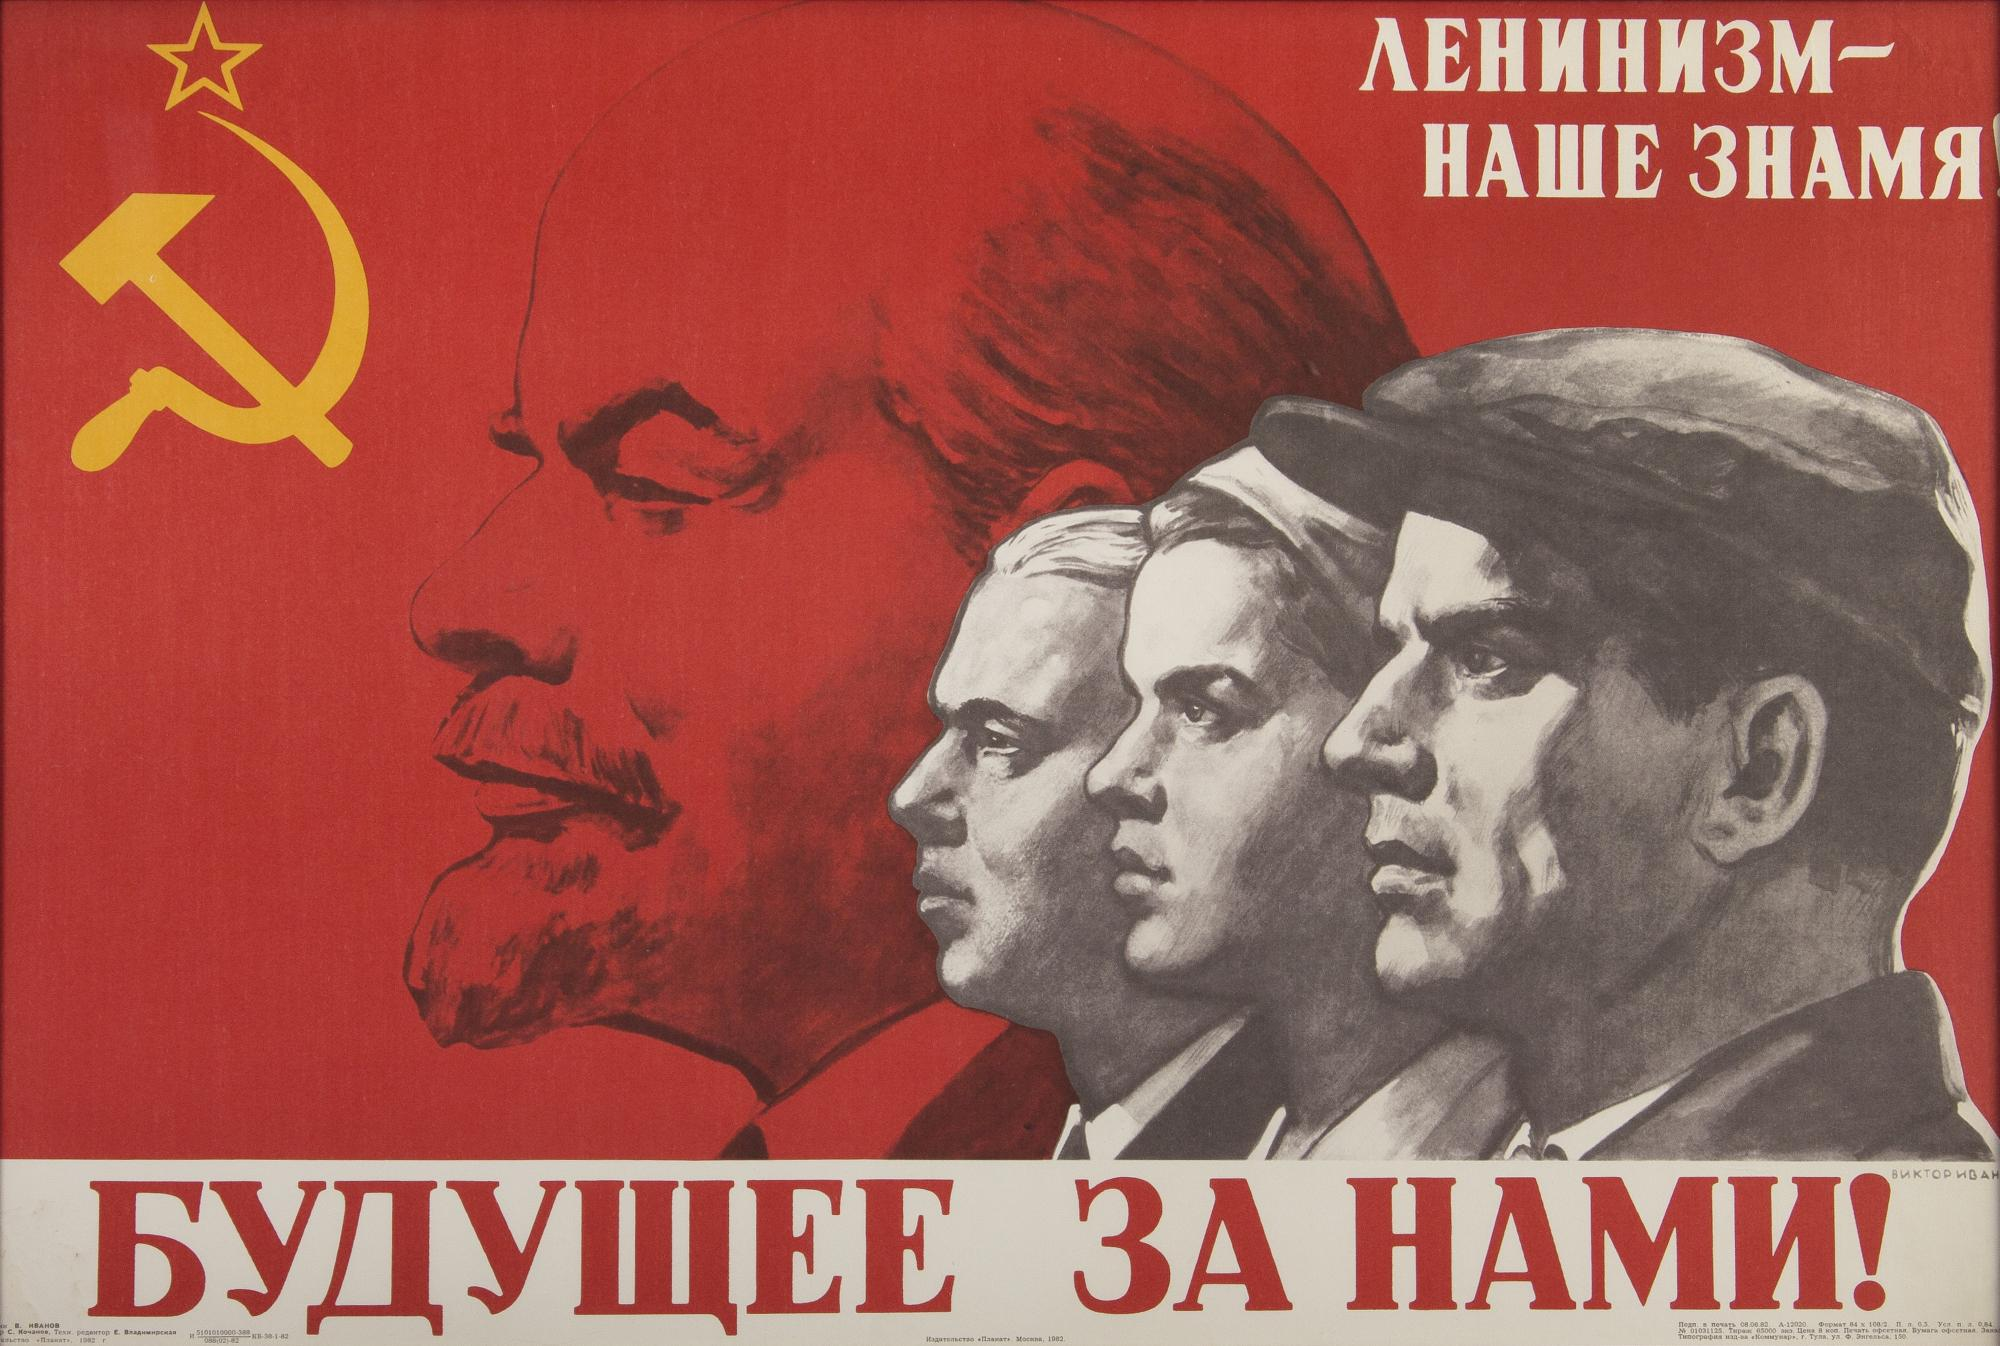 Leninism: Our Banner, V. Ivanov, 1982, Lithographic Poster, The Hollingsworth Collection